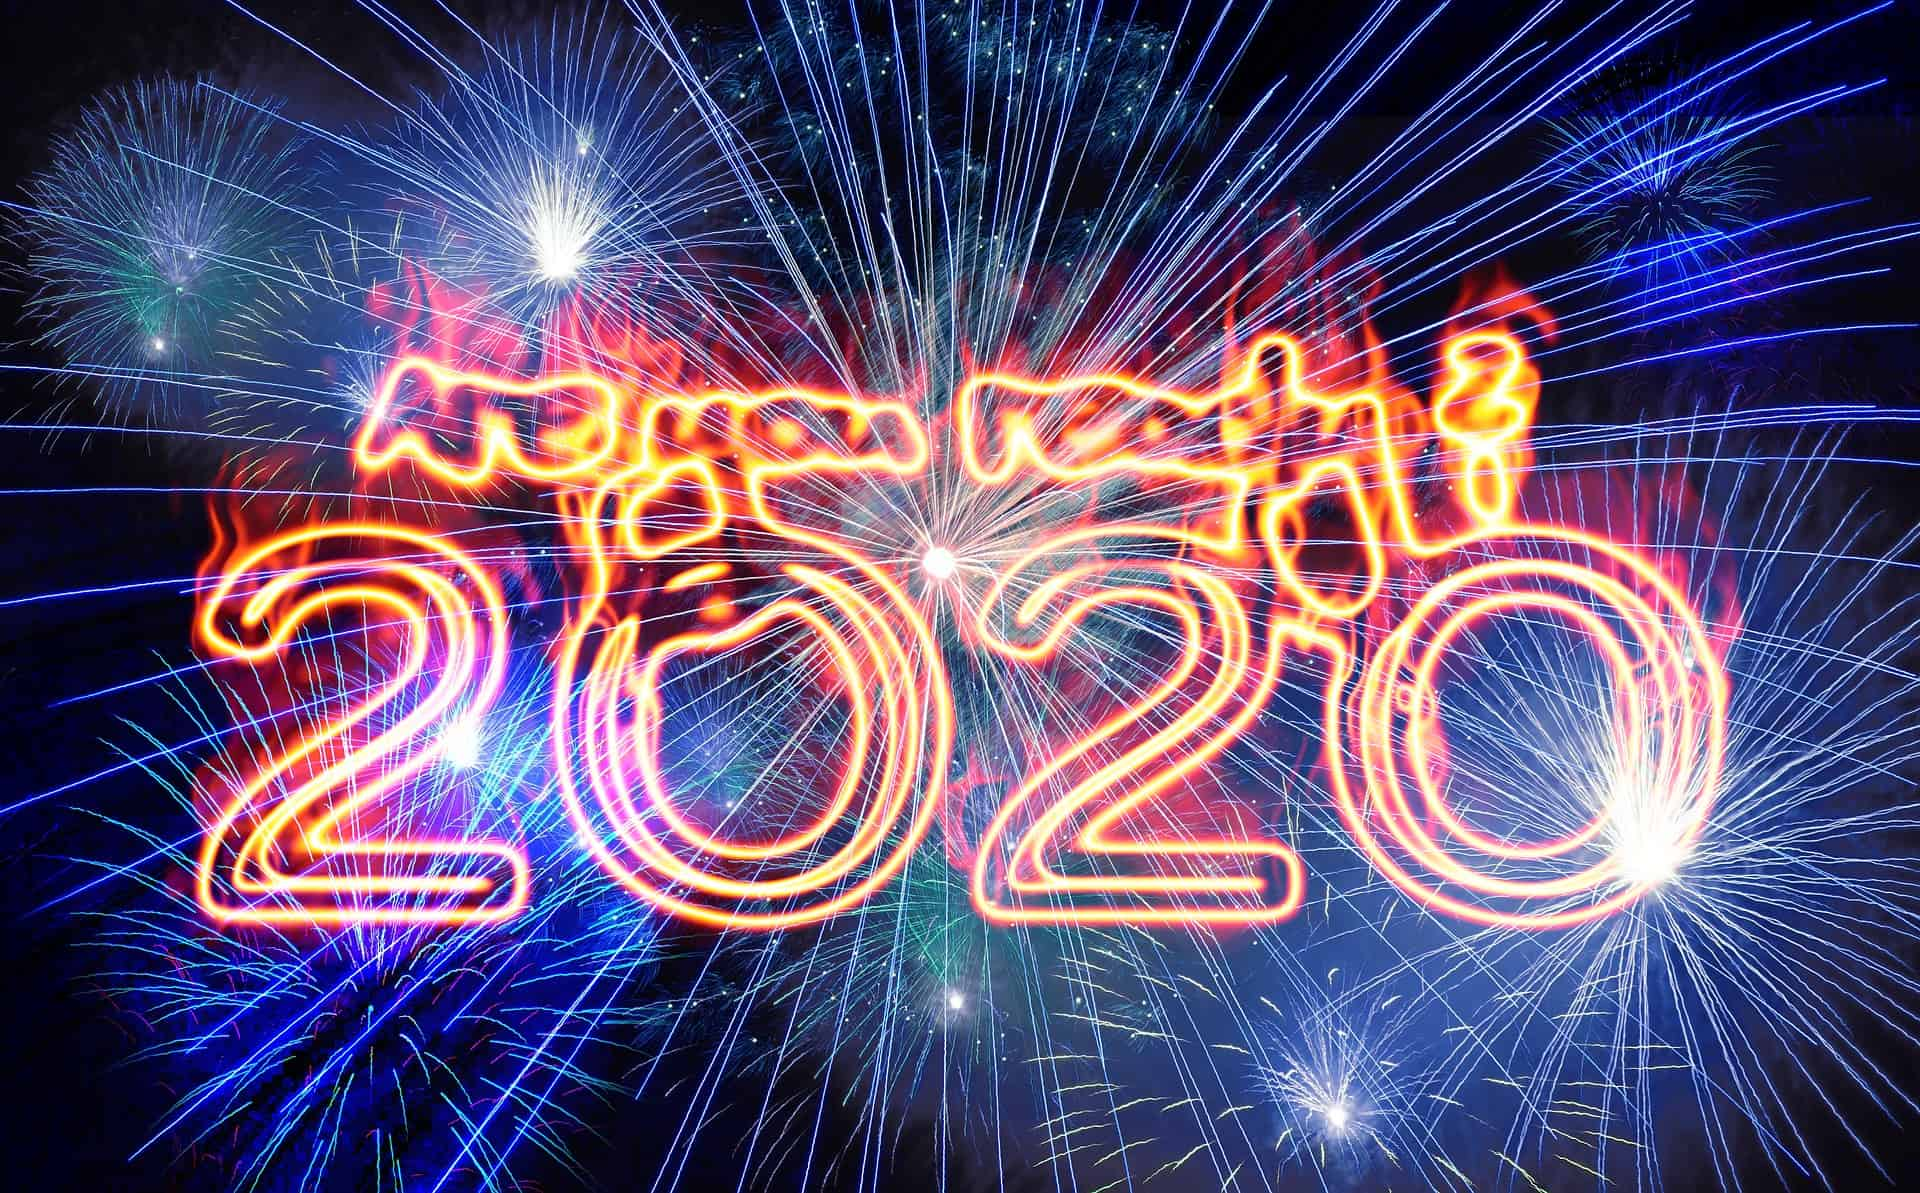 Your 2020 Business Goals and Vision in neon